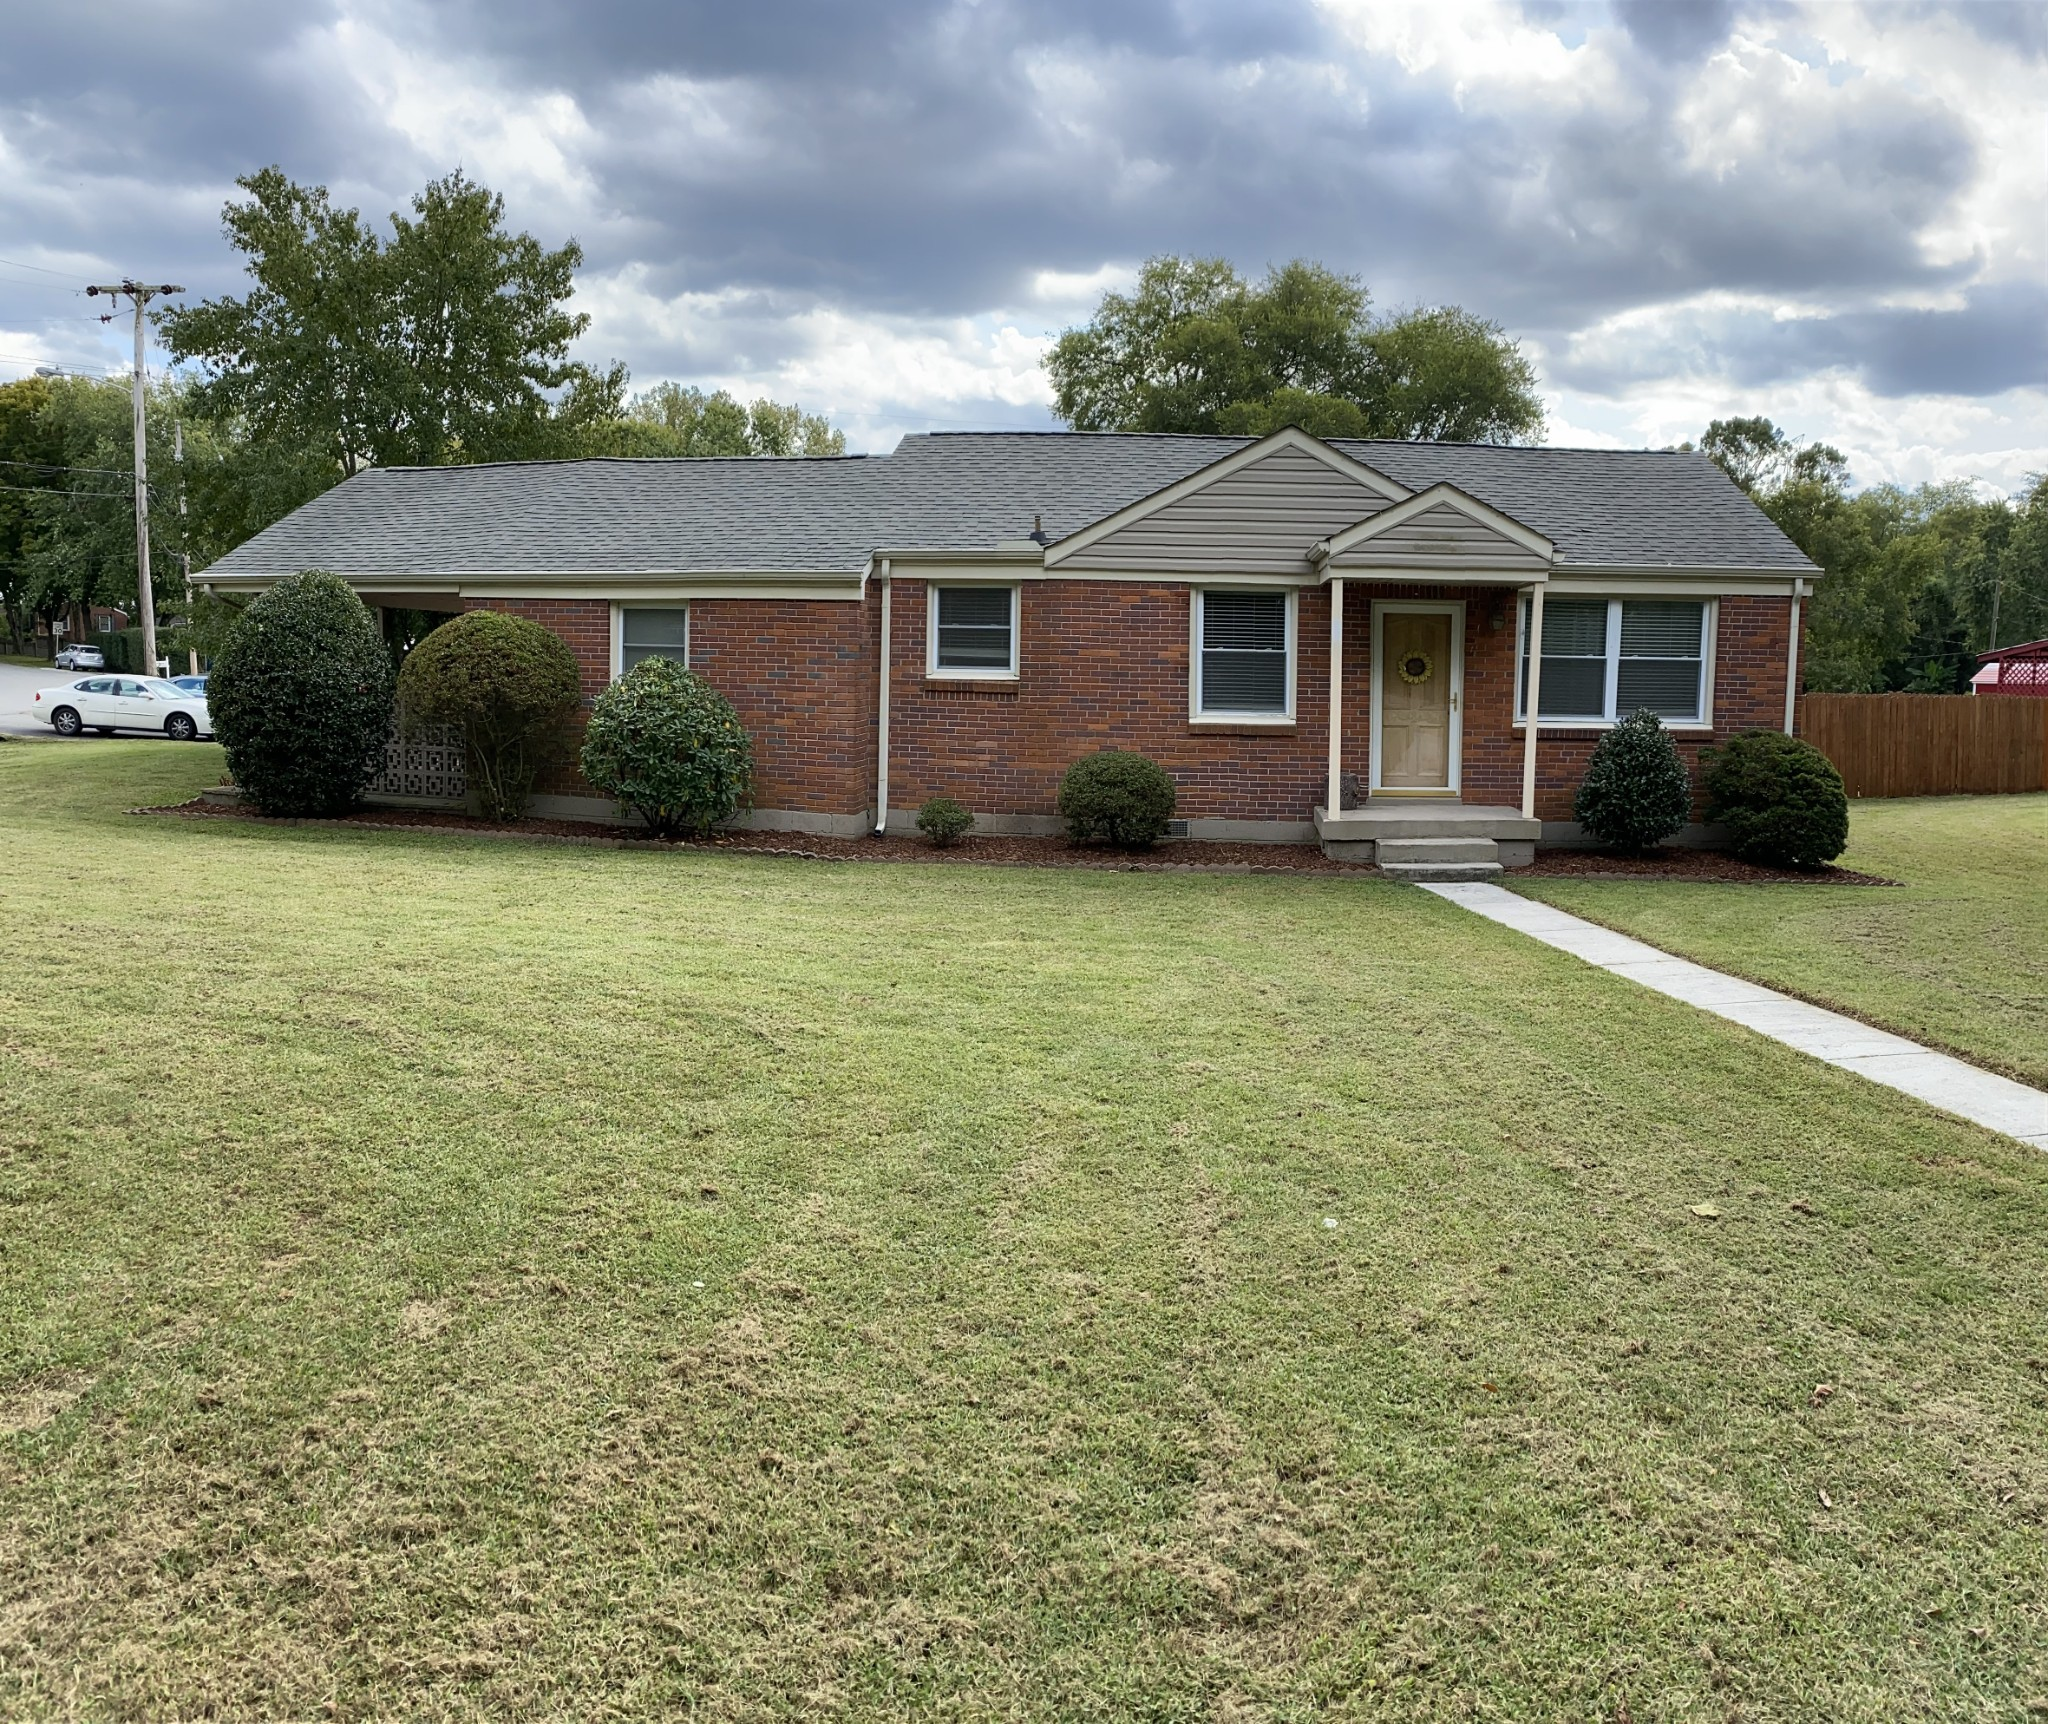 Newly renovated ranch home located in Donelson.  This home is on a corner lot in a highly desirable neighborhood. Updated kitchen with granite countertops and new appliances. Refinished hardwood floors. Move in ready. Den can be used as a third bedroom.